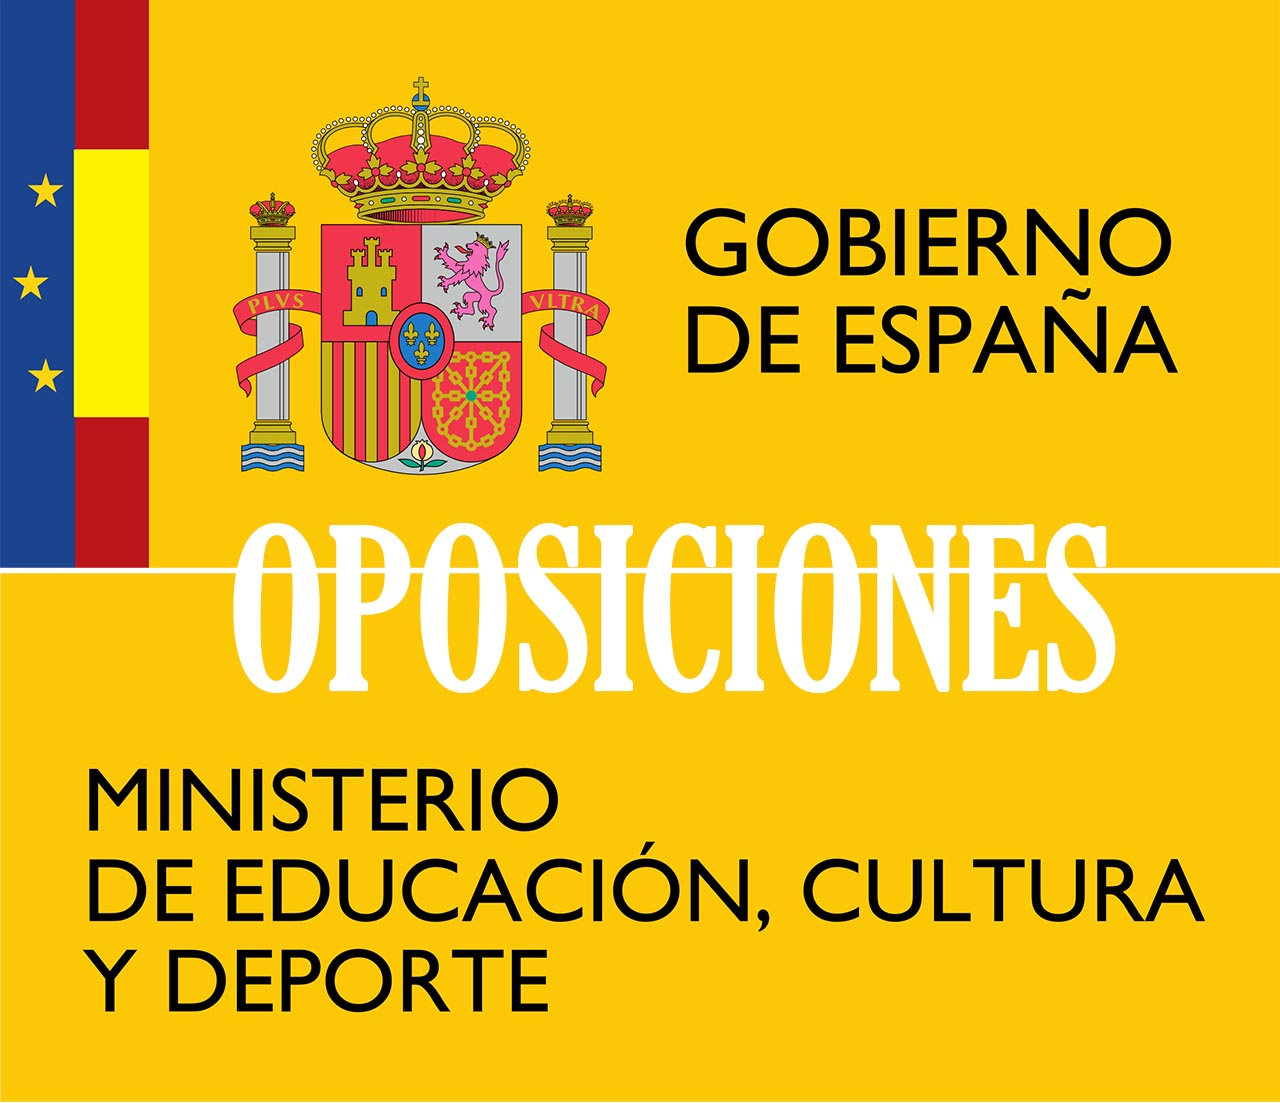 Convocatorias de oposiciones y concursos download pdf for Convocatoria docentes 2016 ministerio de educacion